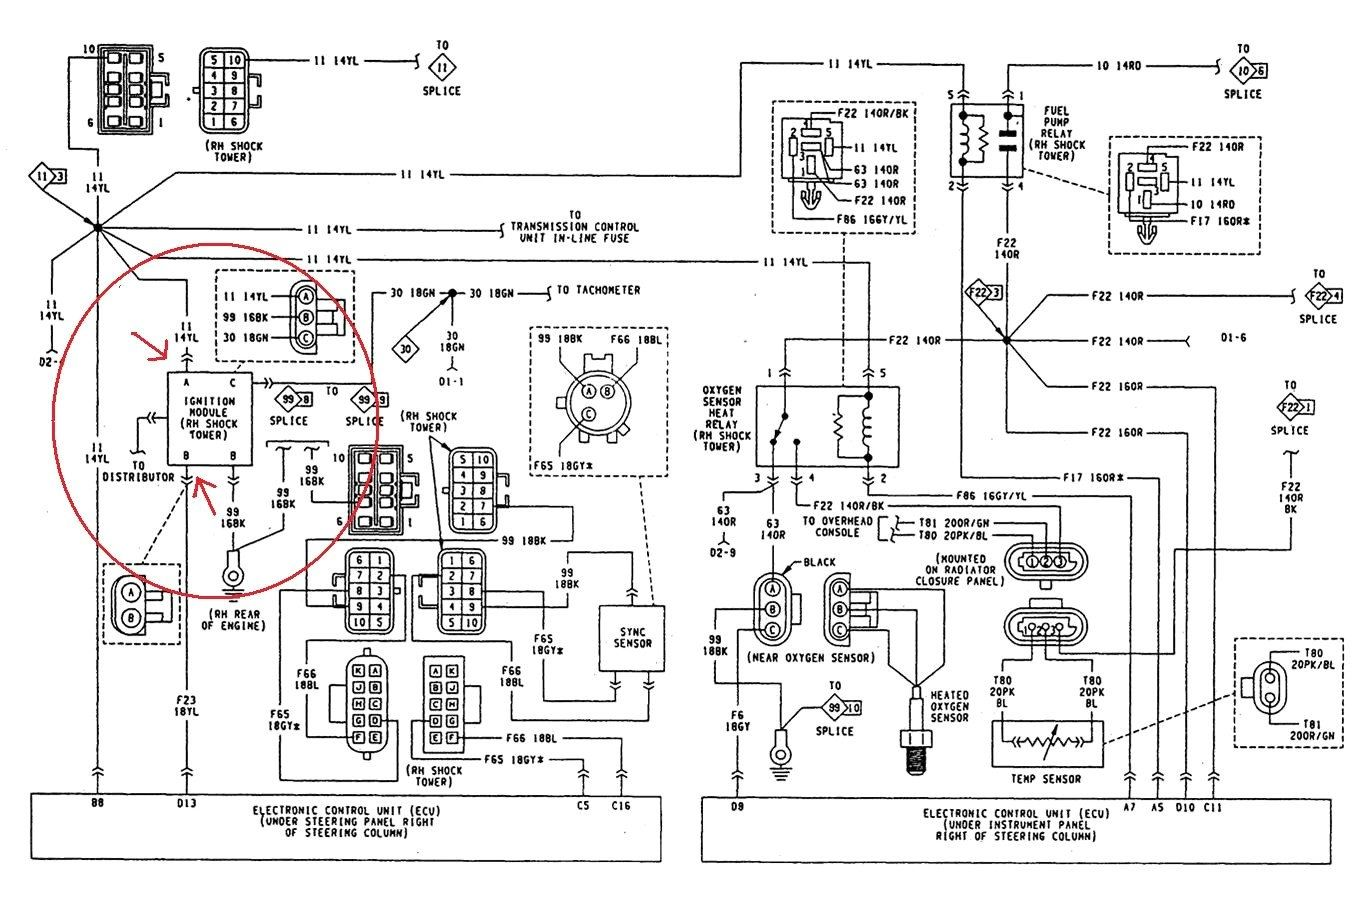 small resolution of 1990 jeep wiring diagram wiring diagram 1990 jeep yj vacuum diagram 1990 jeep wrangler 4 2